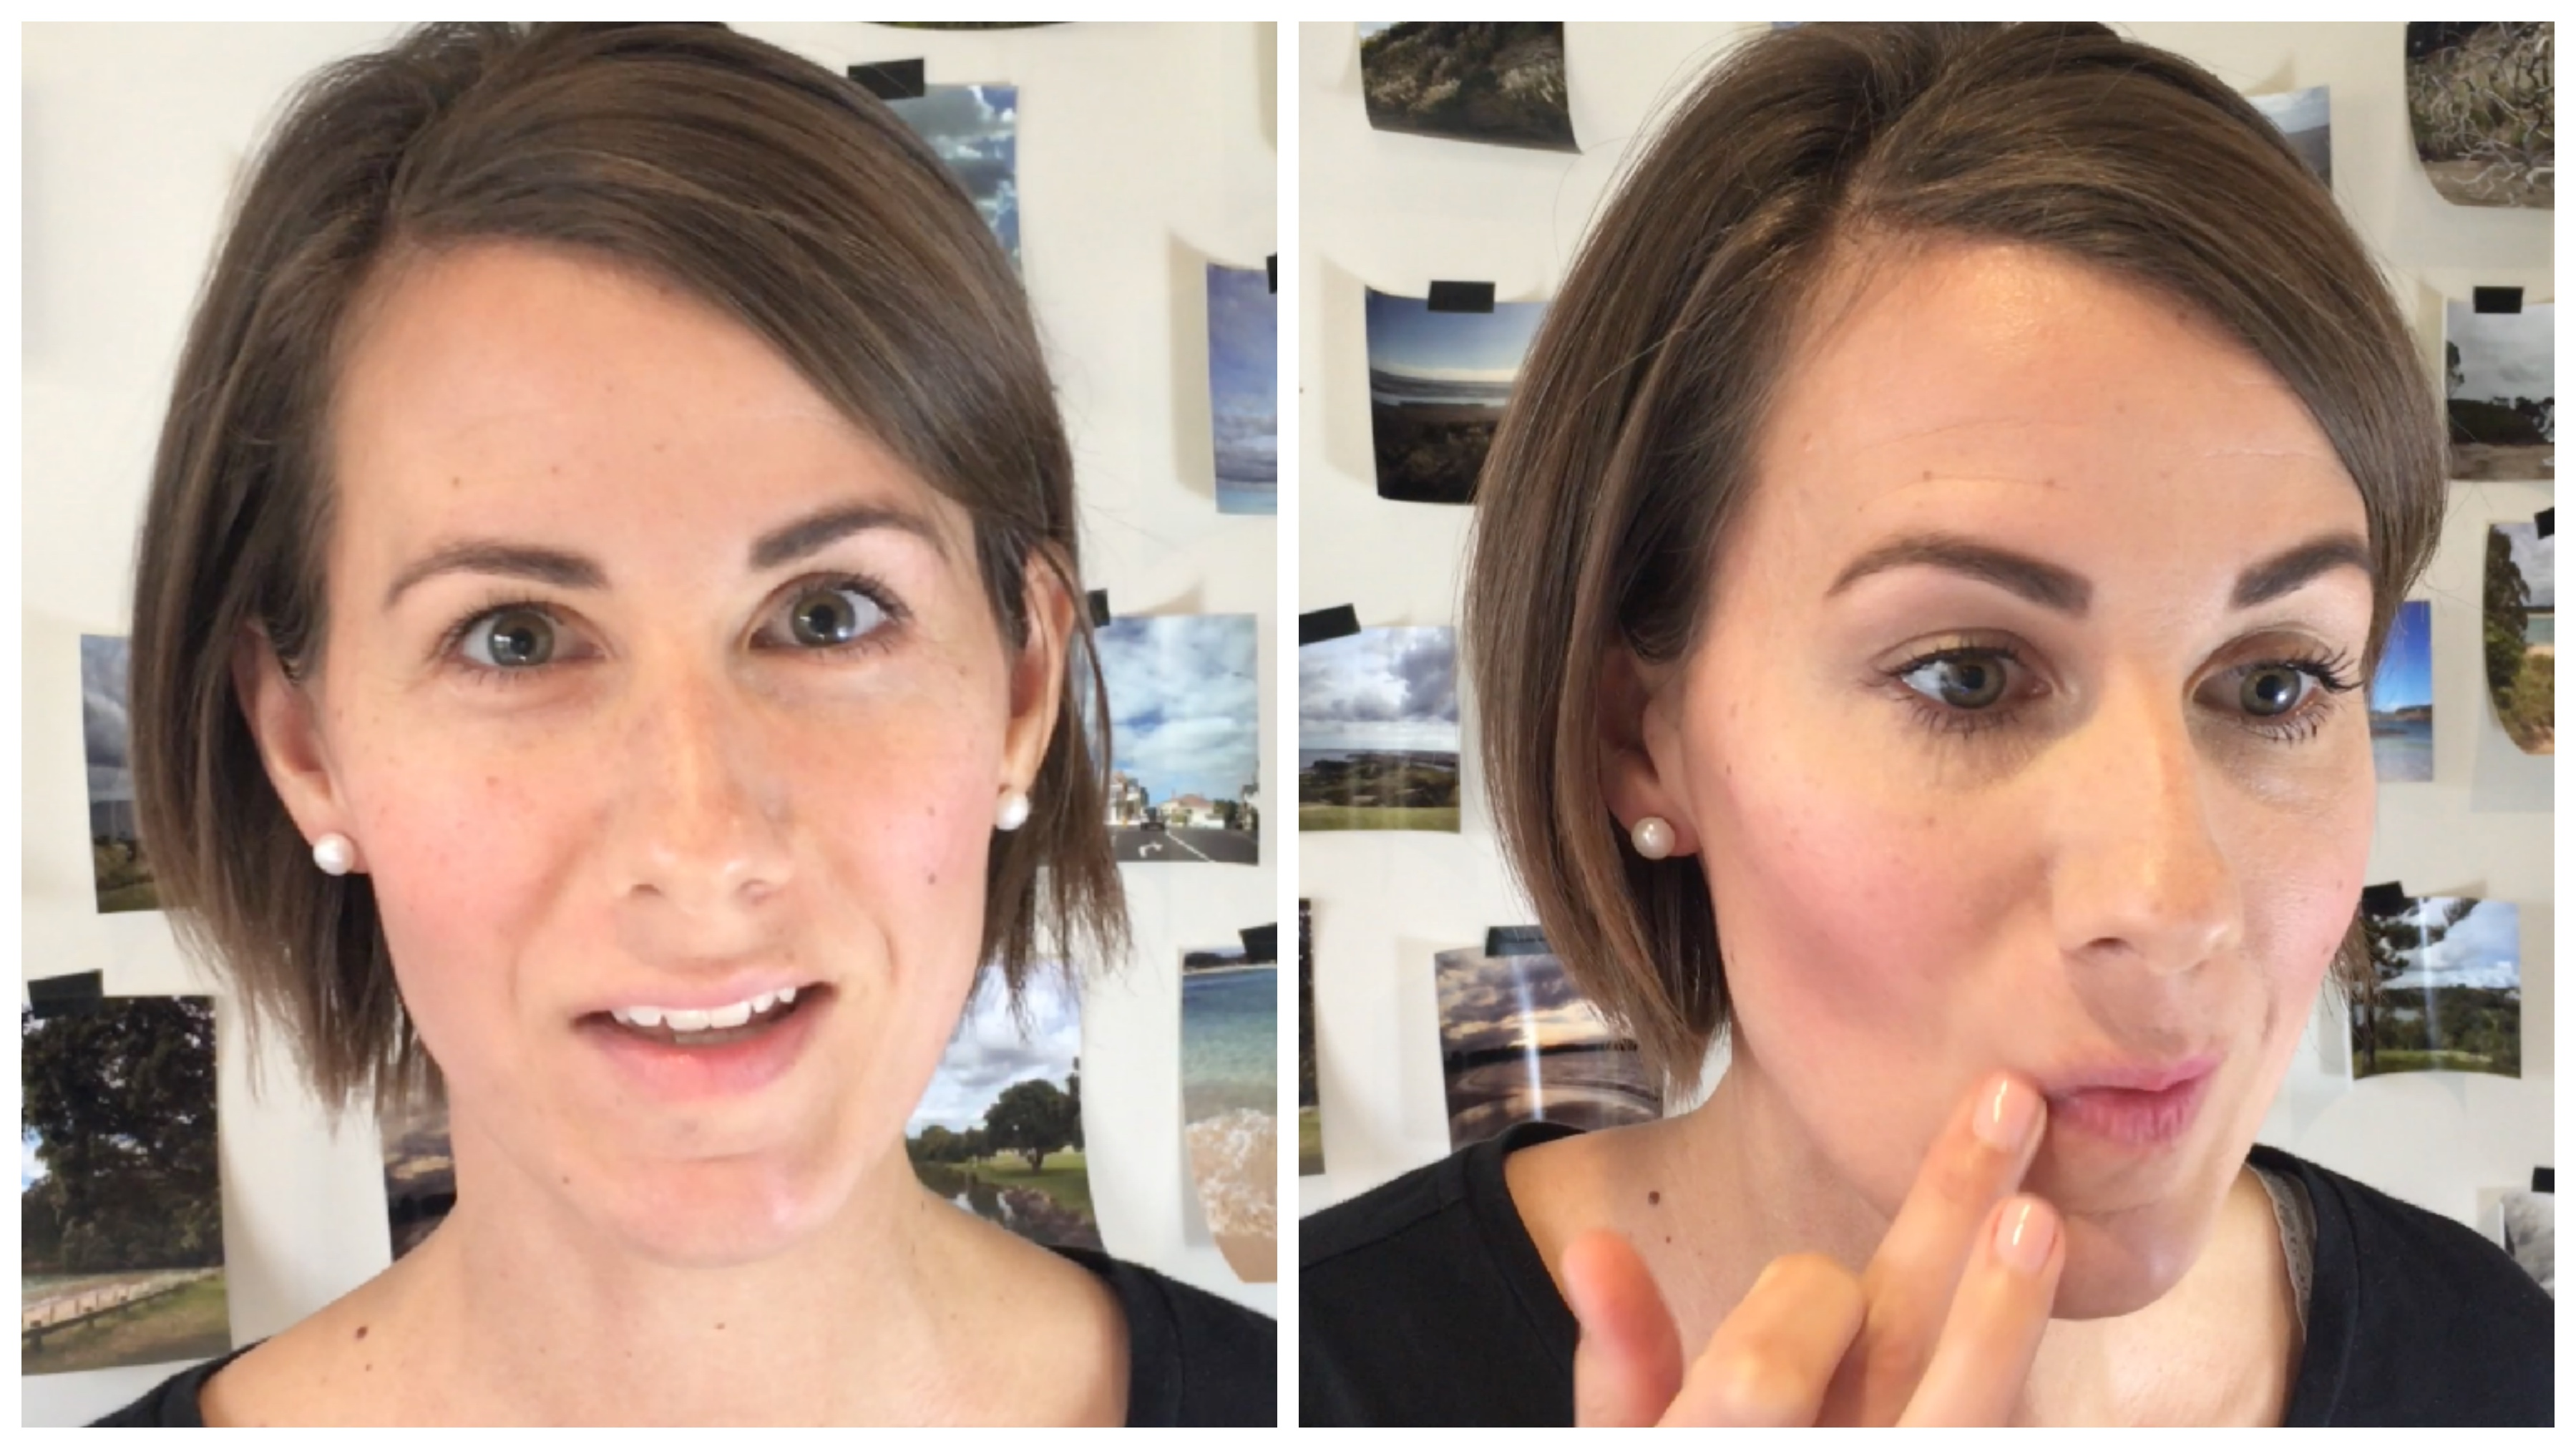 Easy 5 Minute makeup routine with Maskcara Beauty Girl, at www.MaskcaraBeautyGirl.com, learn how to quickly make up your beautiful face with Maskcara beauty makeup products.